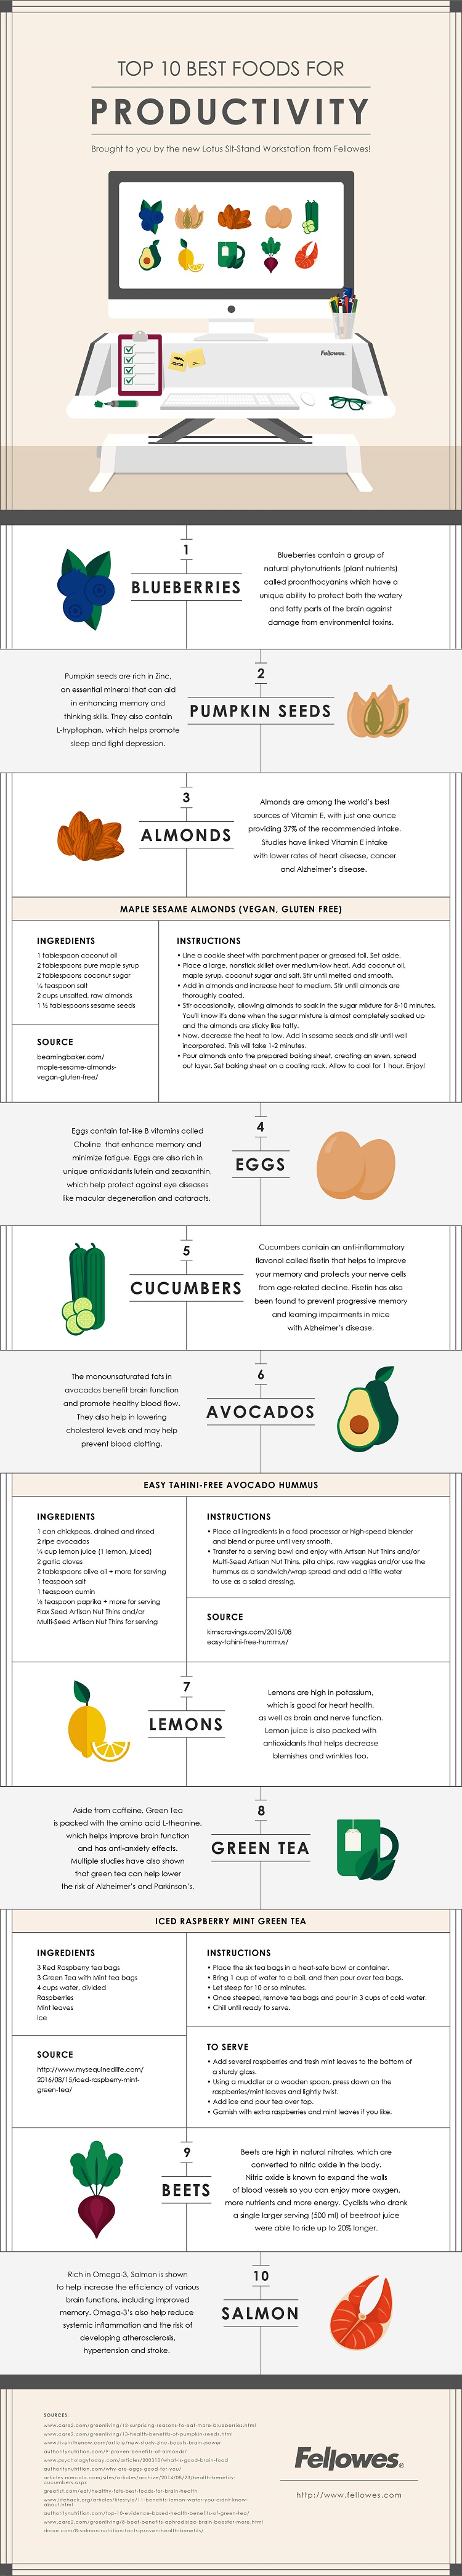 Top 10 Best Foods For Productivity Infographic